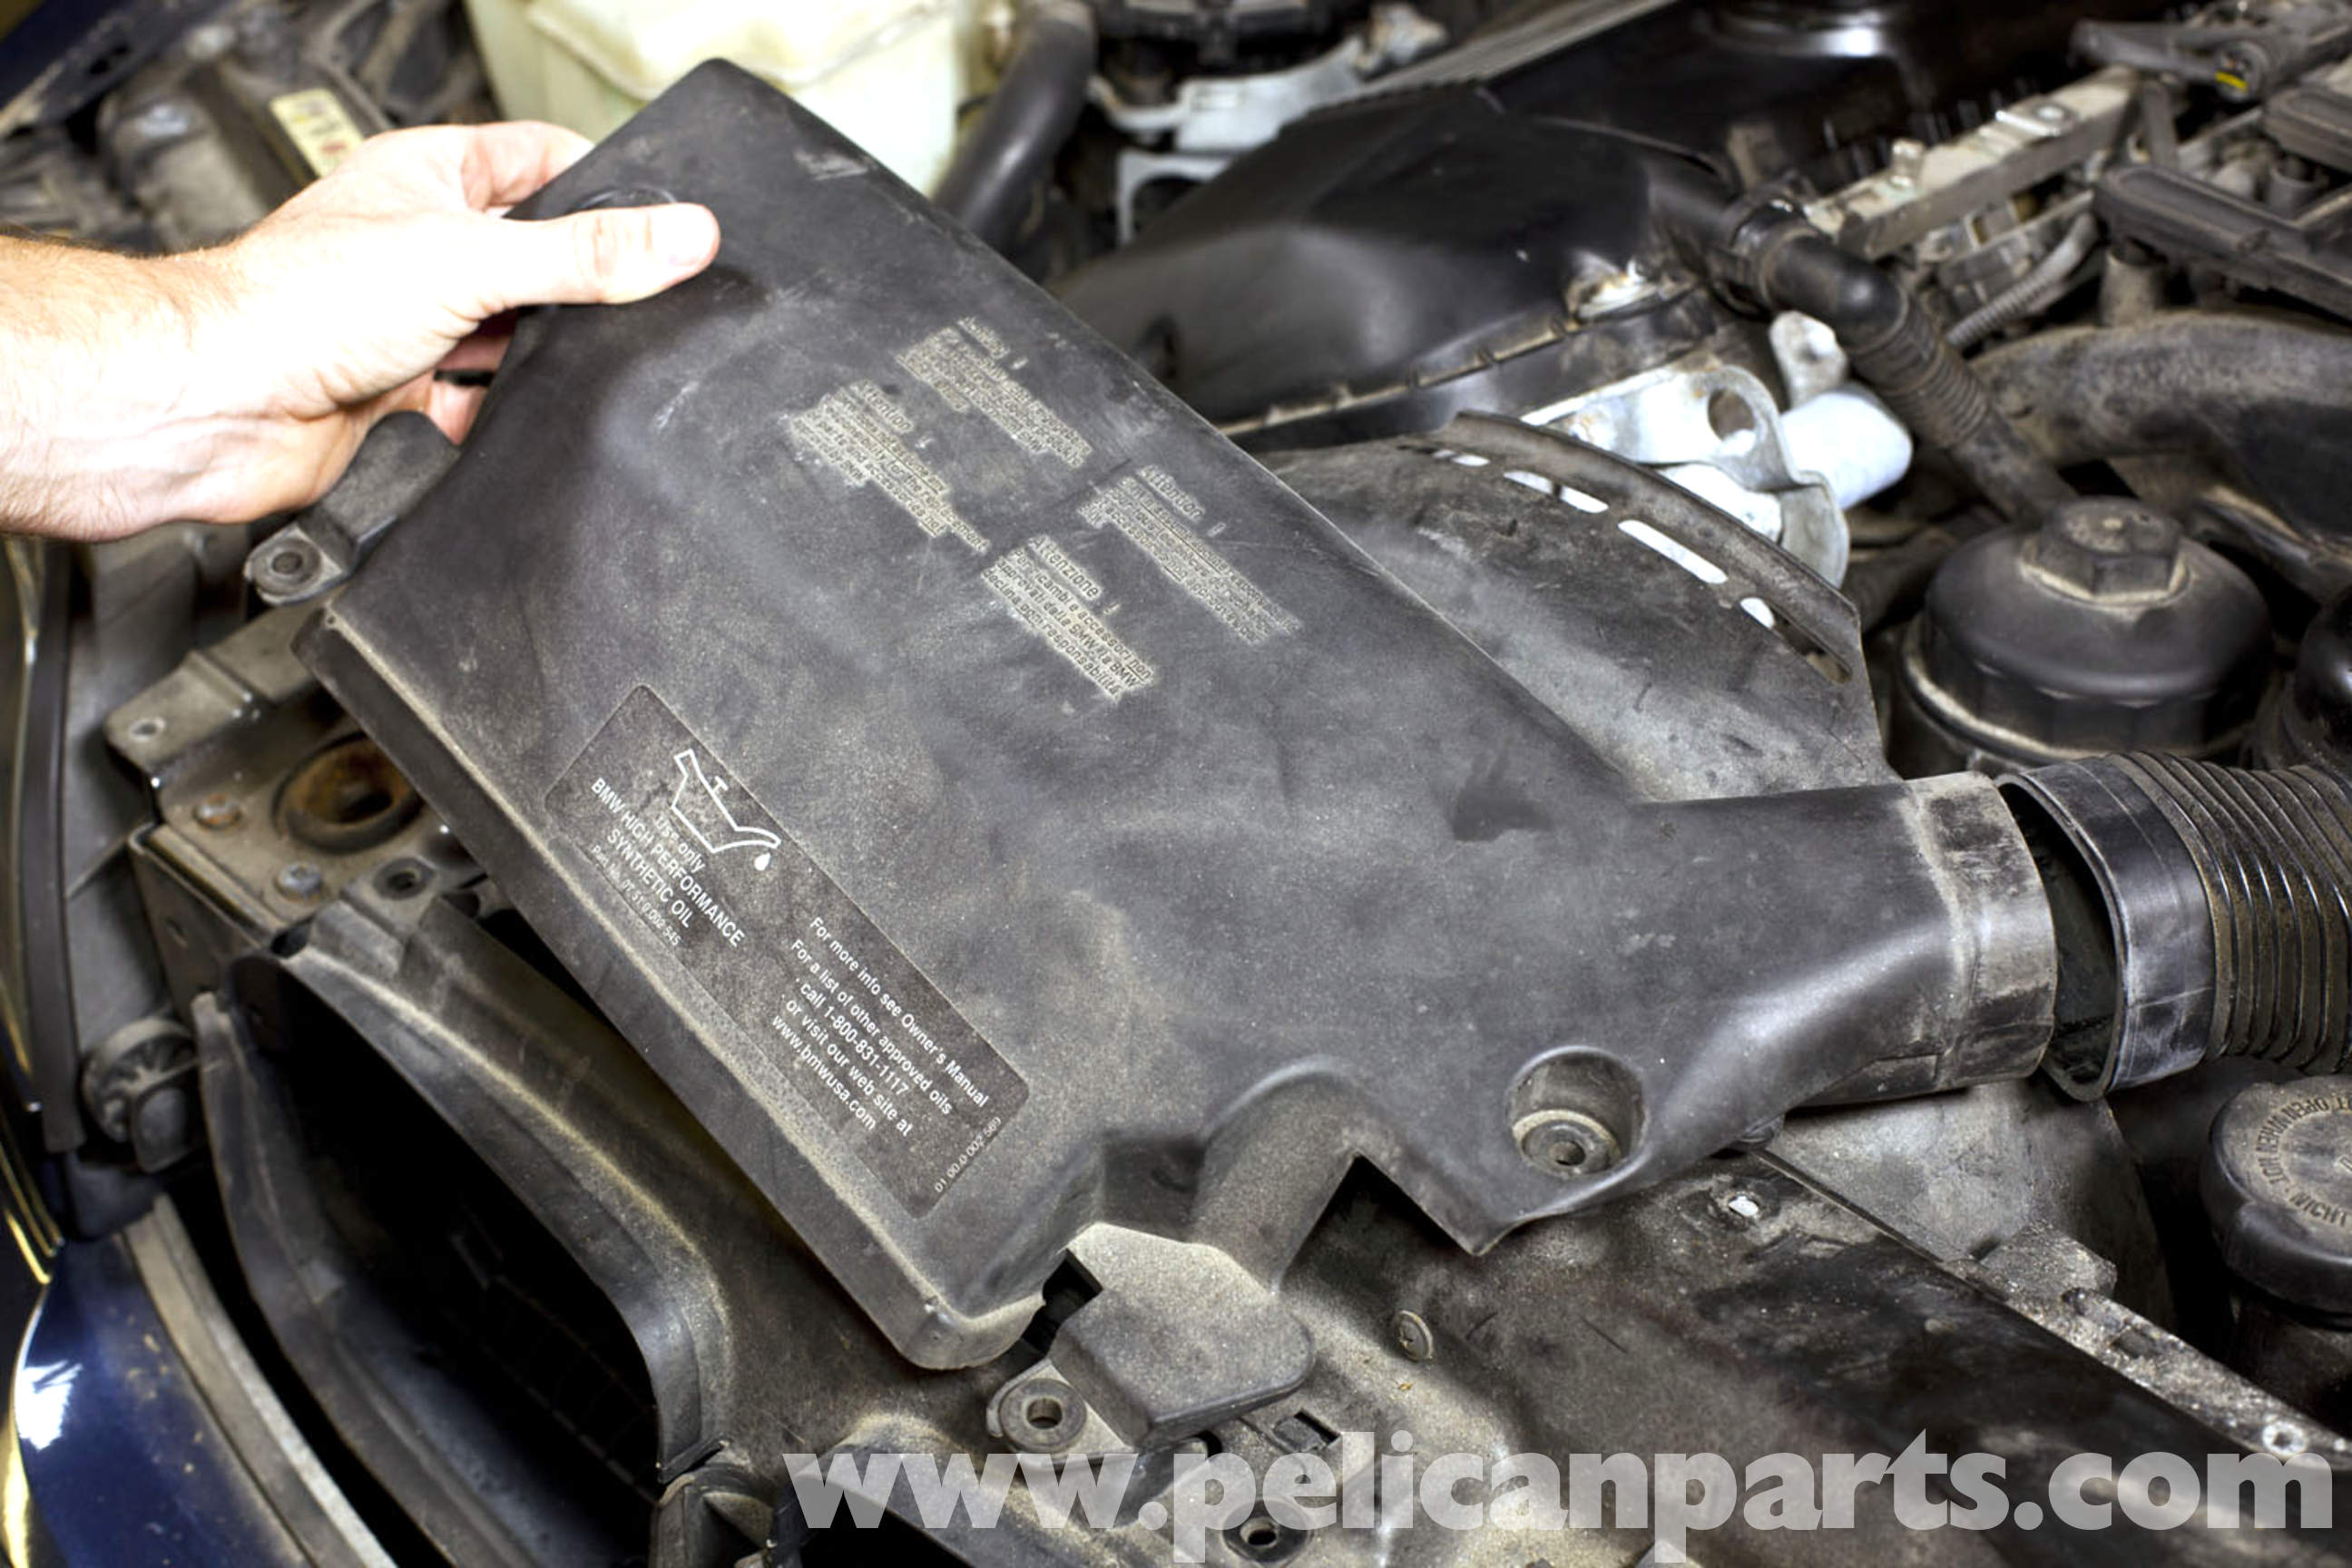 BMW E46 Oil Pan Gasket Replacement | BMW 325i (2001-2005), BMW 325Xi